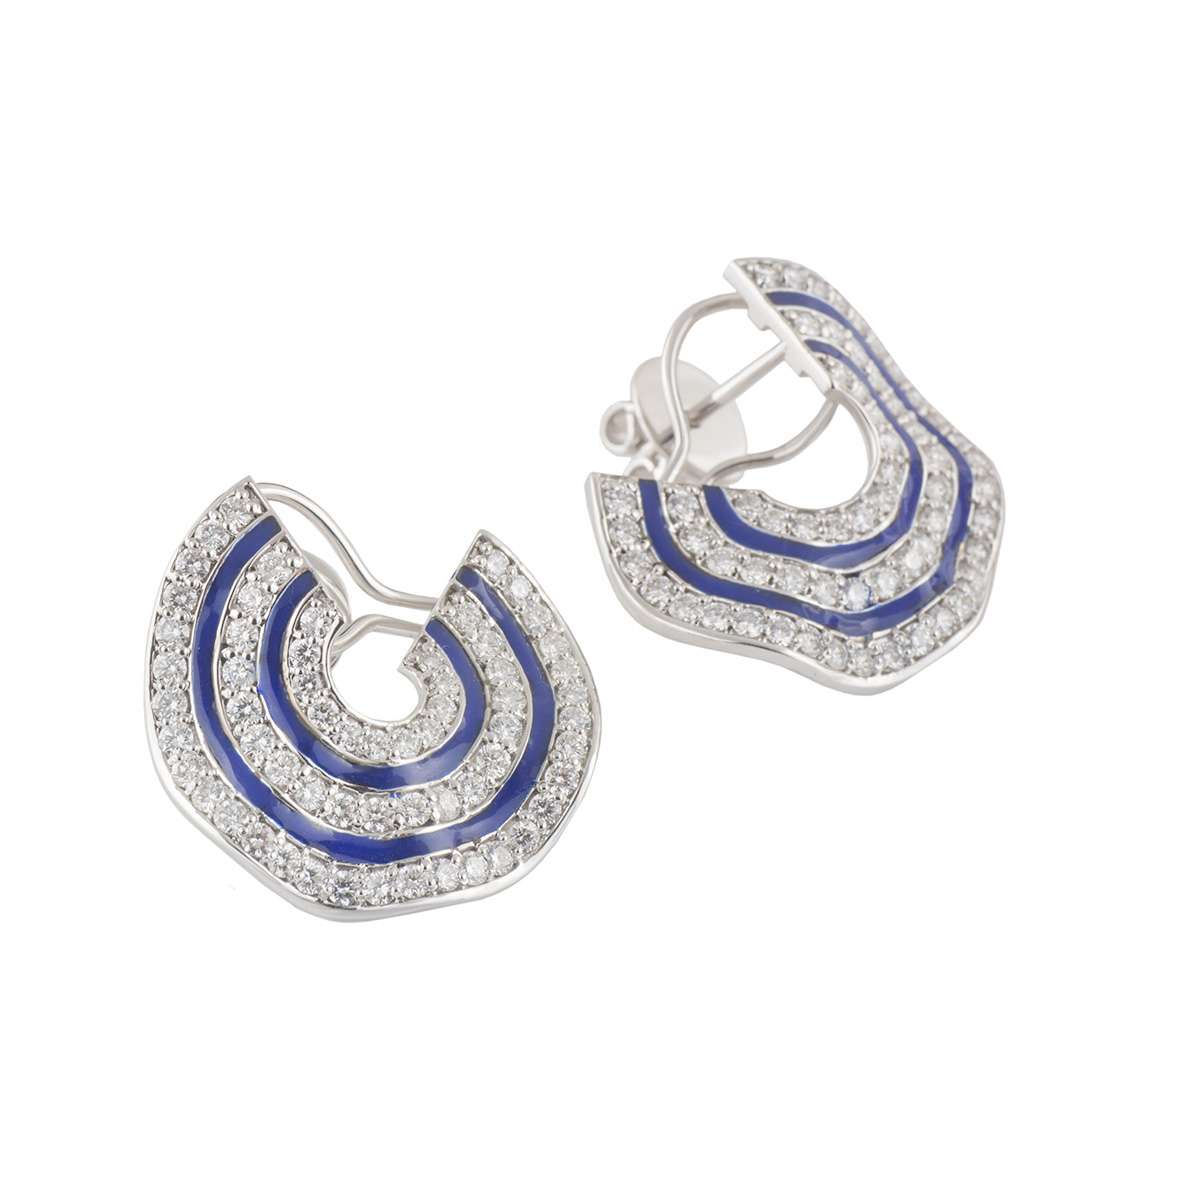 White Gold Diamond and Enamel Earrings 3.28ct